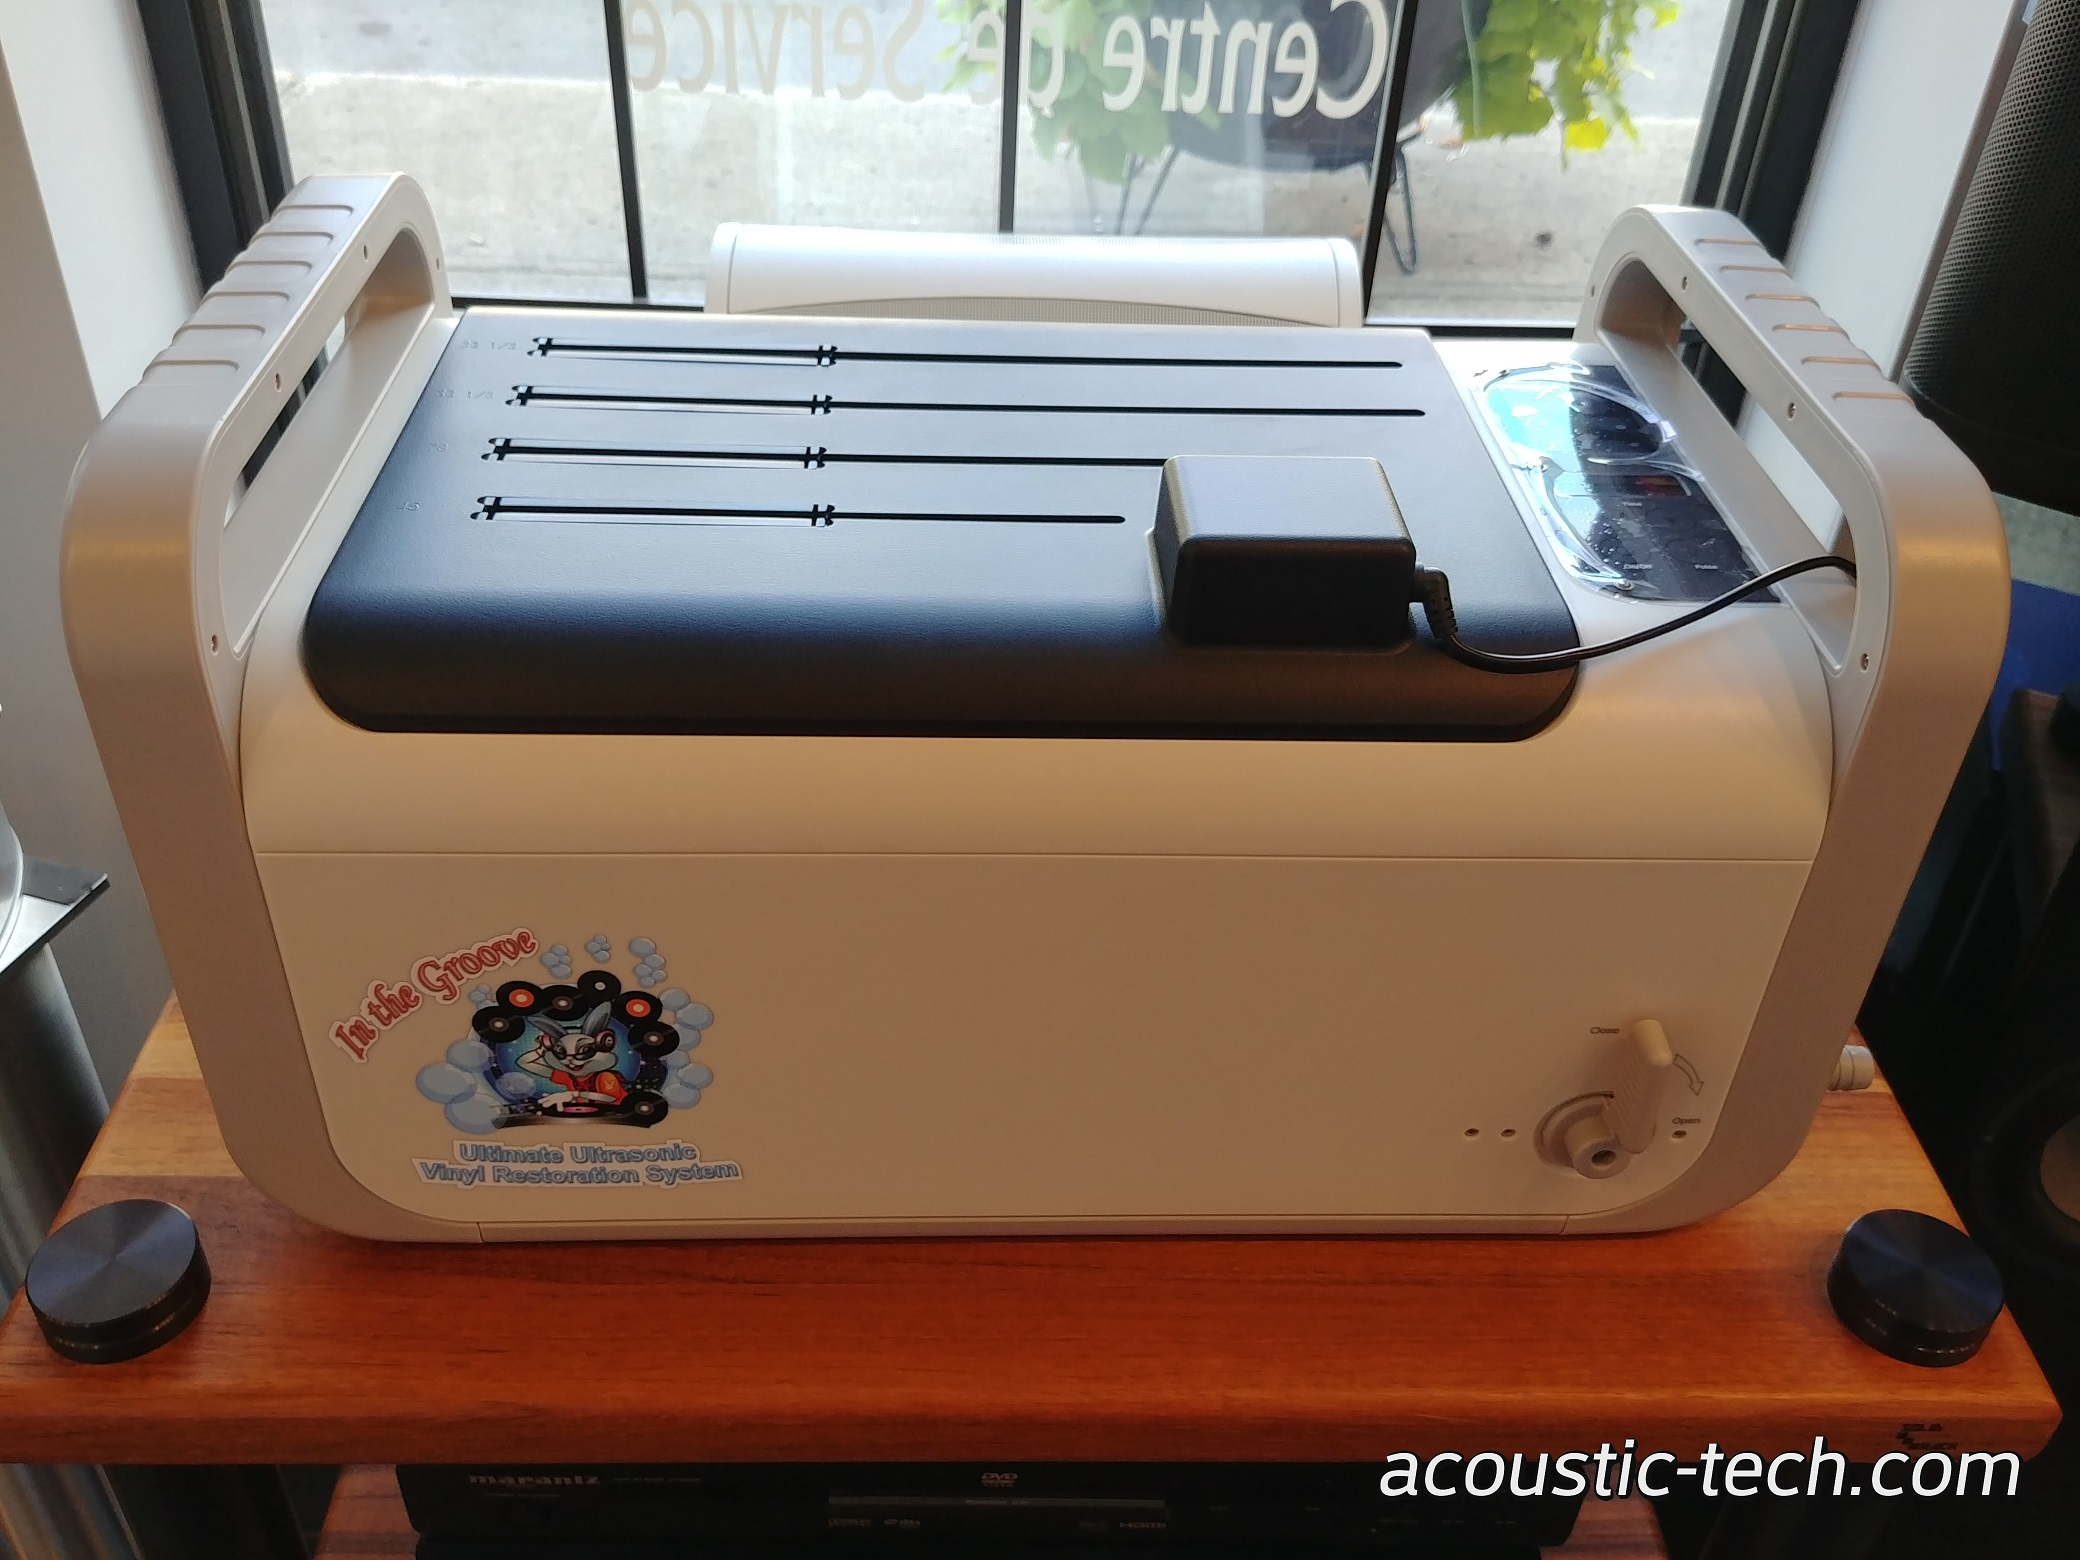 KA-RC-1  In The Groove Ultimate Ultrasonic Vinyl Restoration System